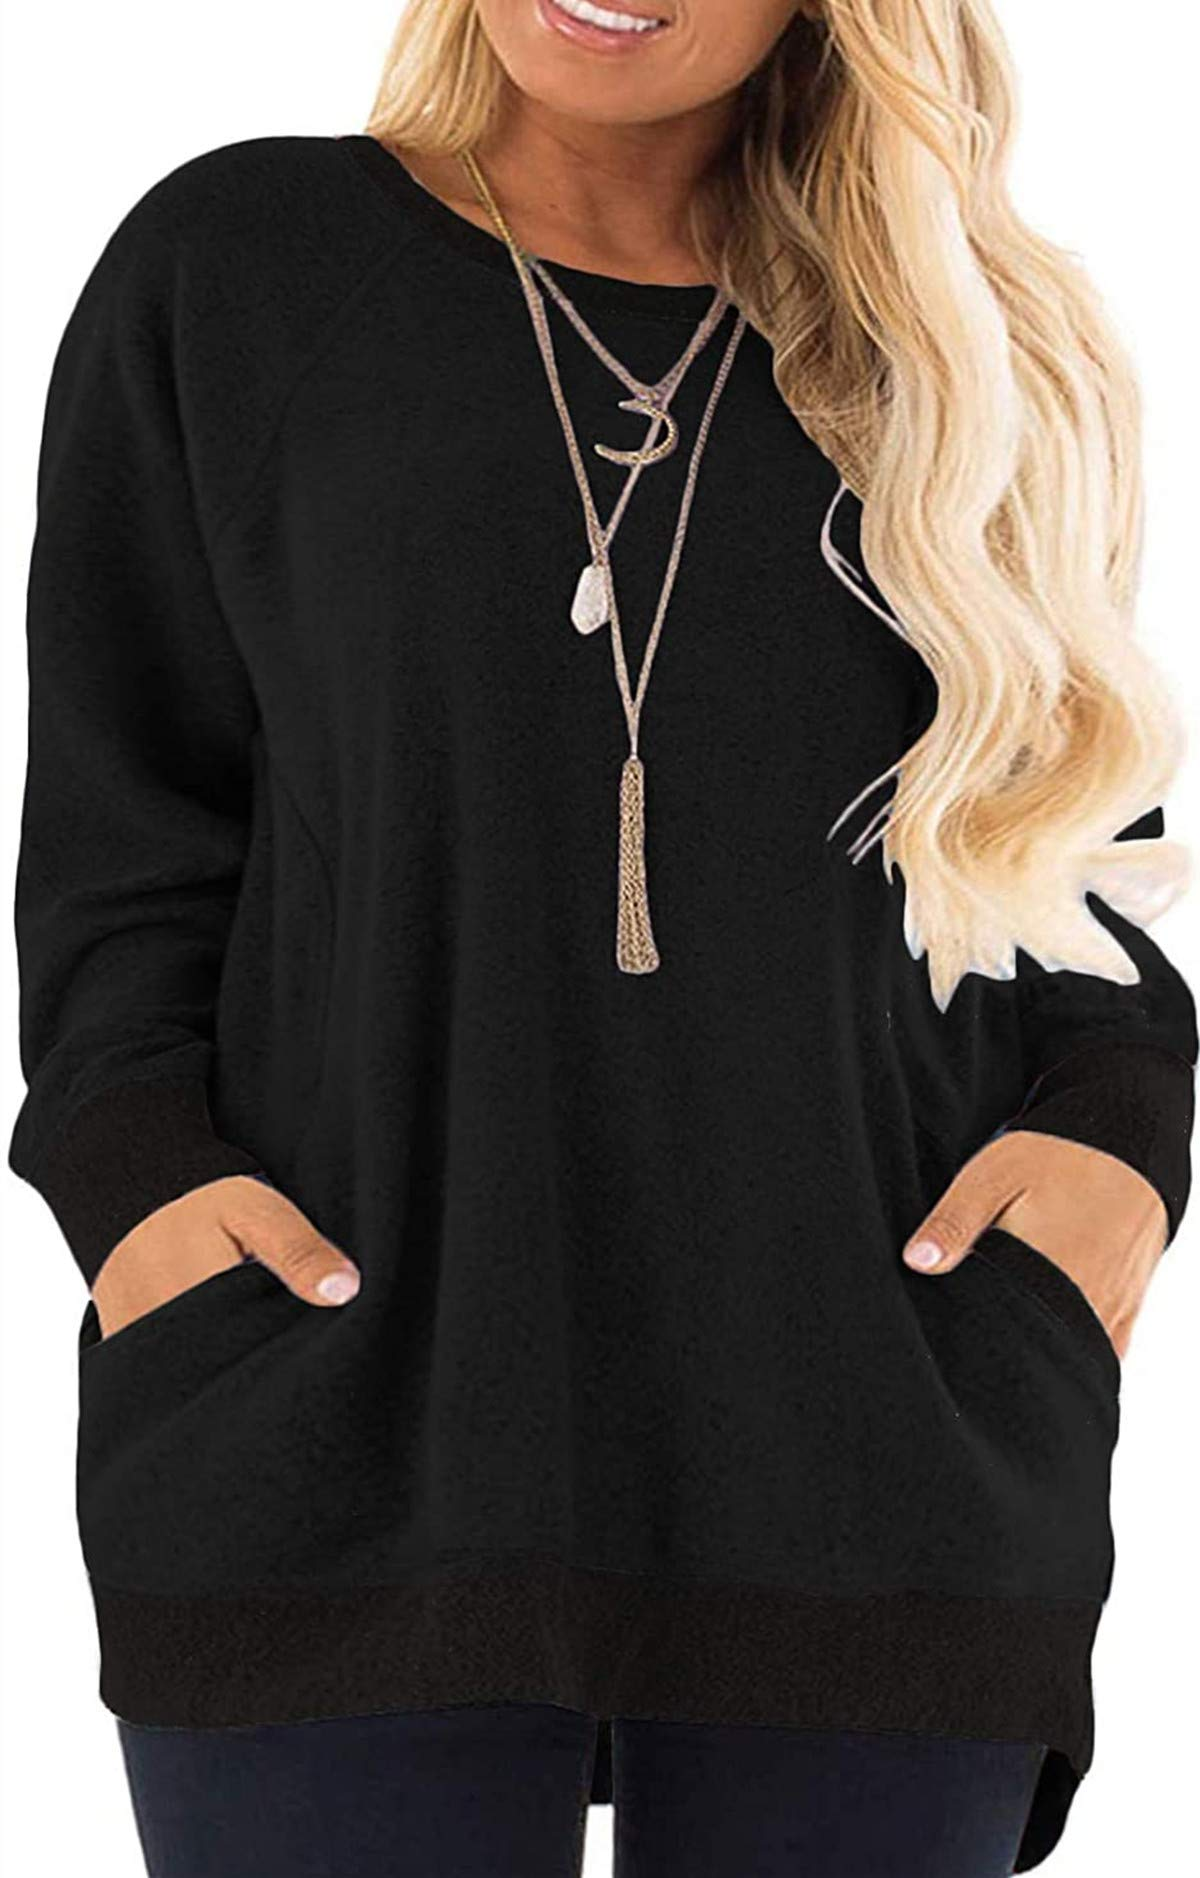 HBEYYTO Womens Casual Color Block Long Sleeve Round Neck Pocket T Shirts Blouses Sweatshirts Plus Size Tunic Tops (S-5XL)